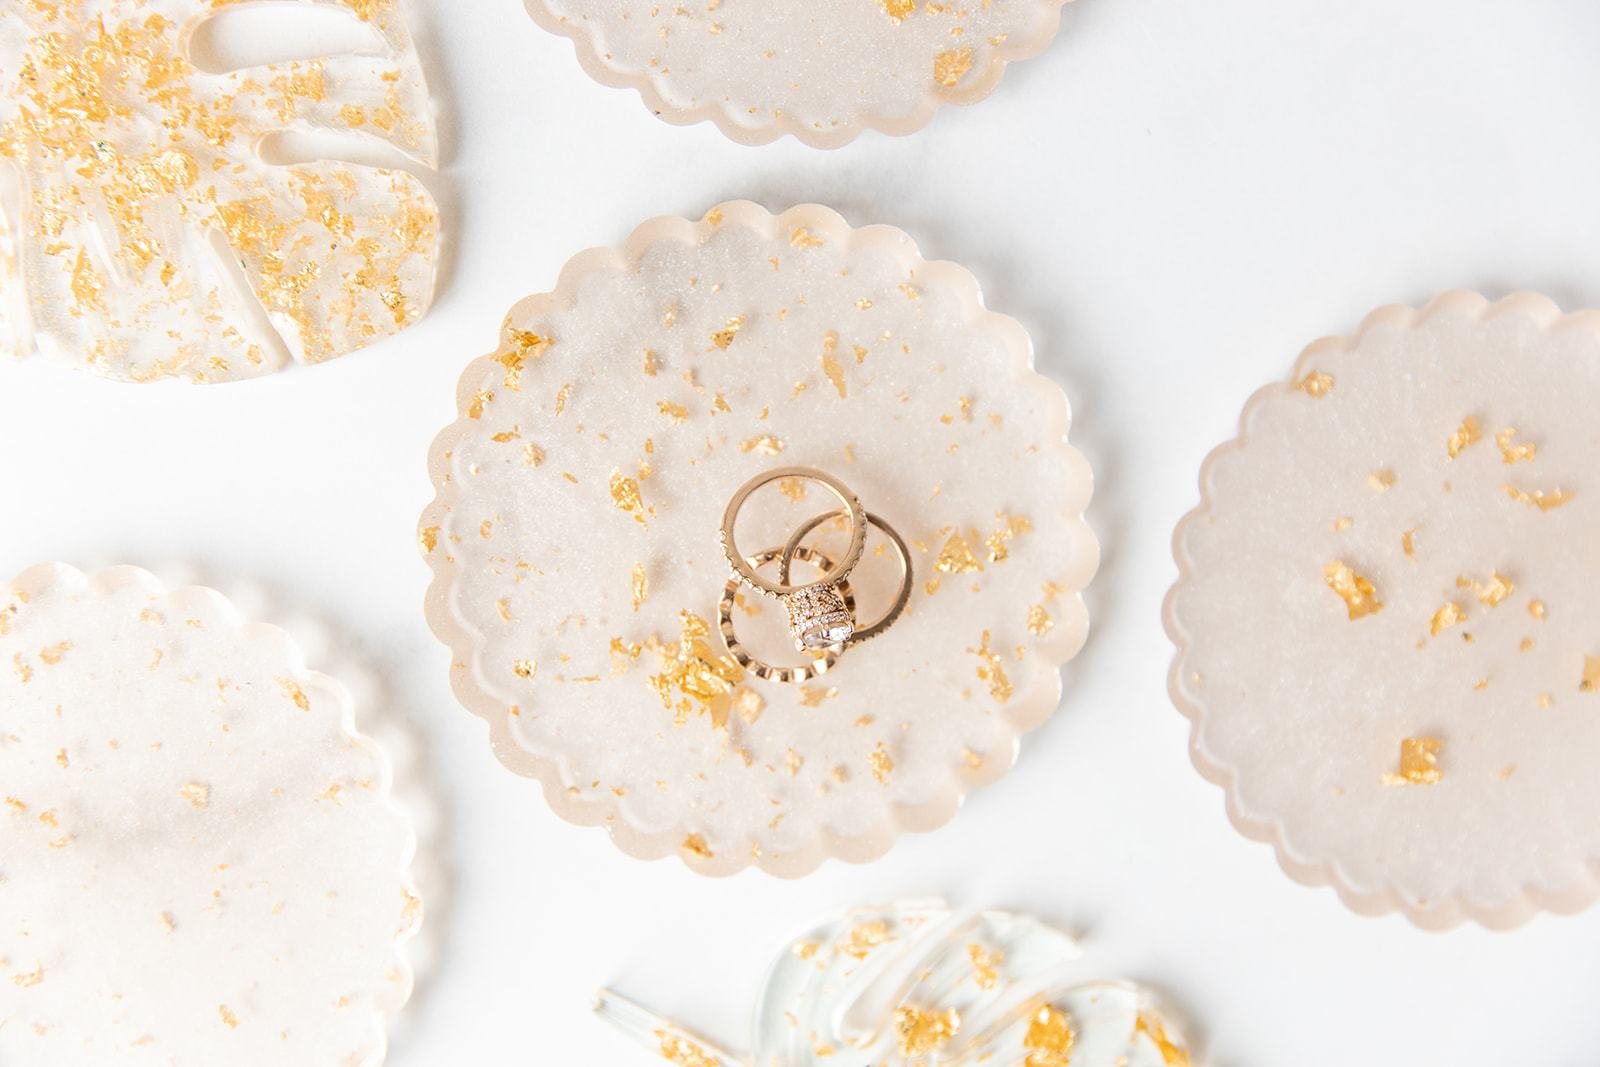 Rings in white and gold coasters